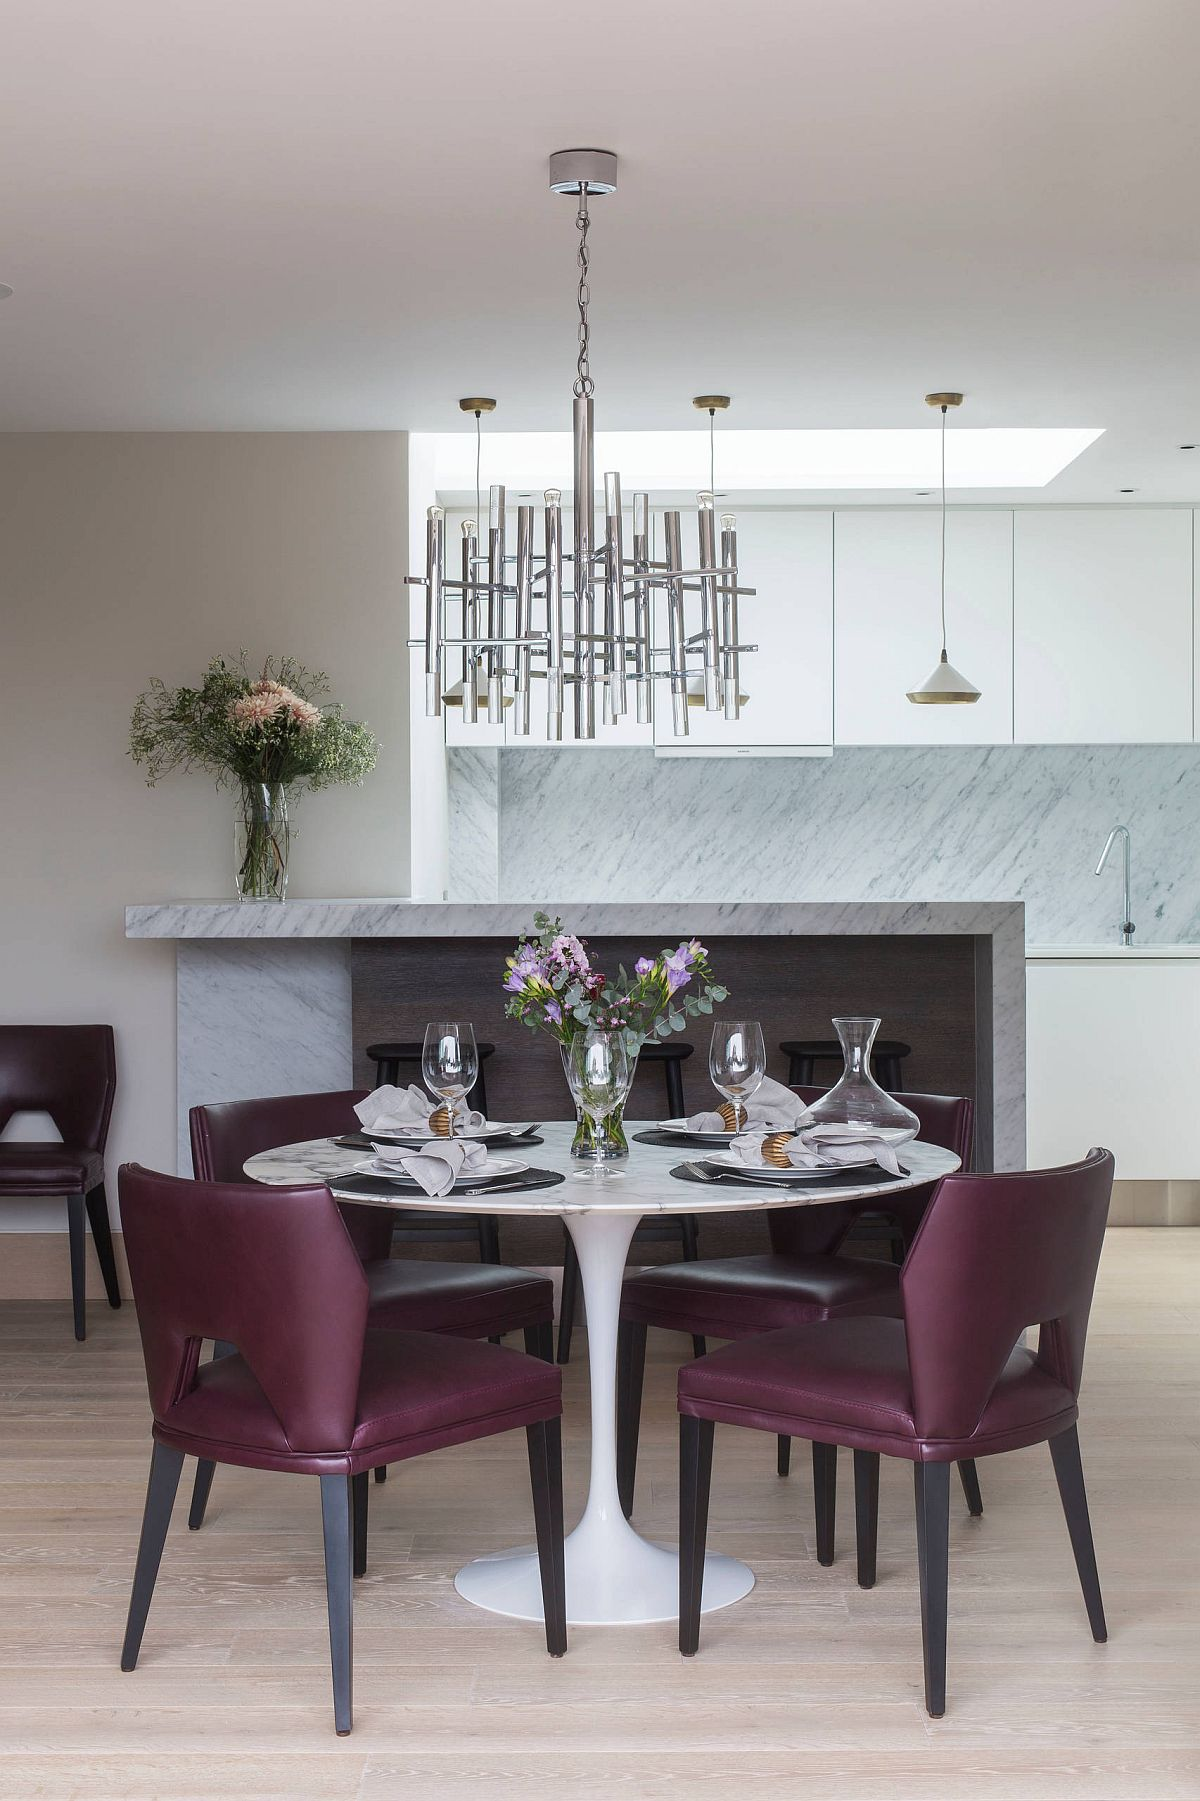 Gorgeous purple chairs coupled with white marble dining table with pedastal base